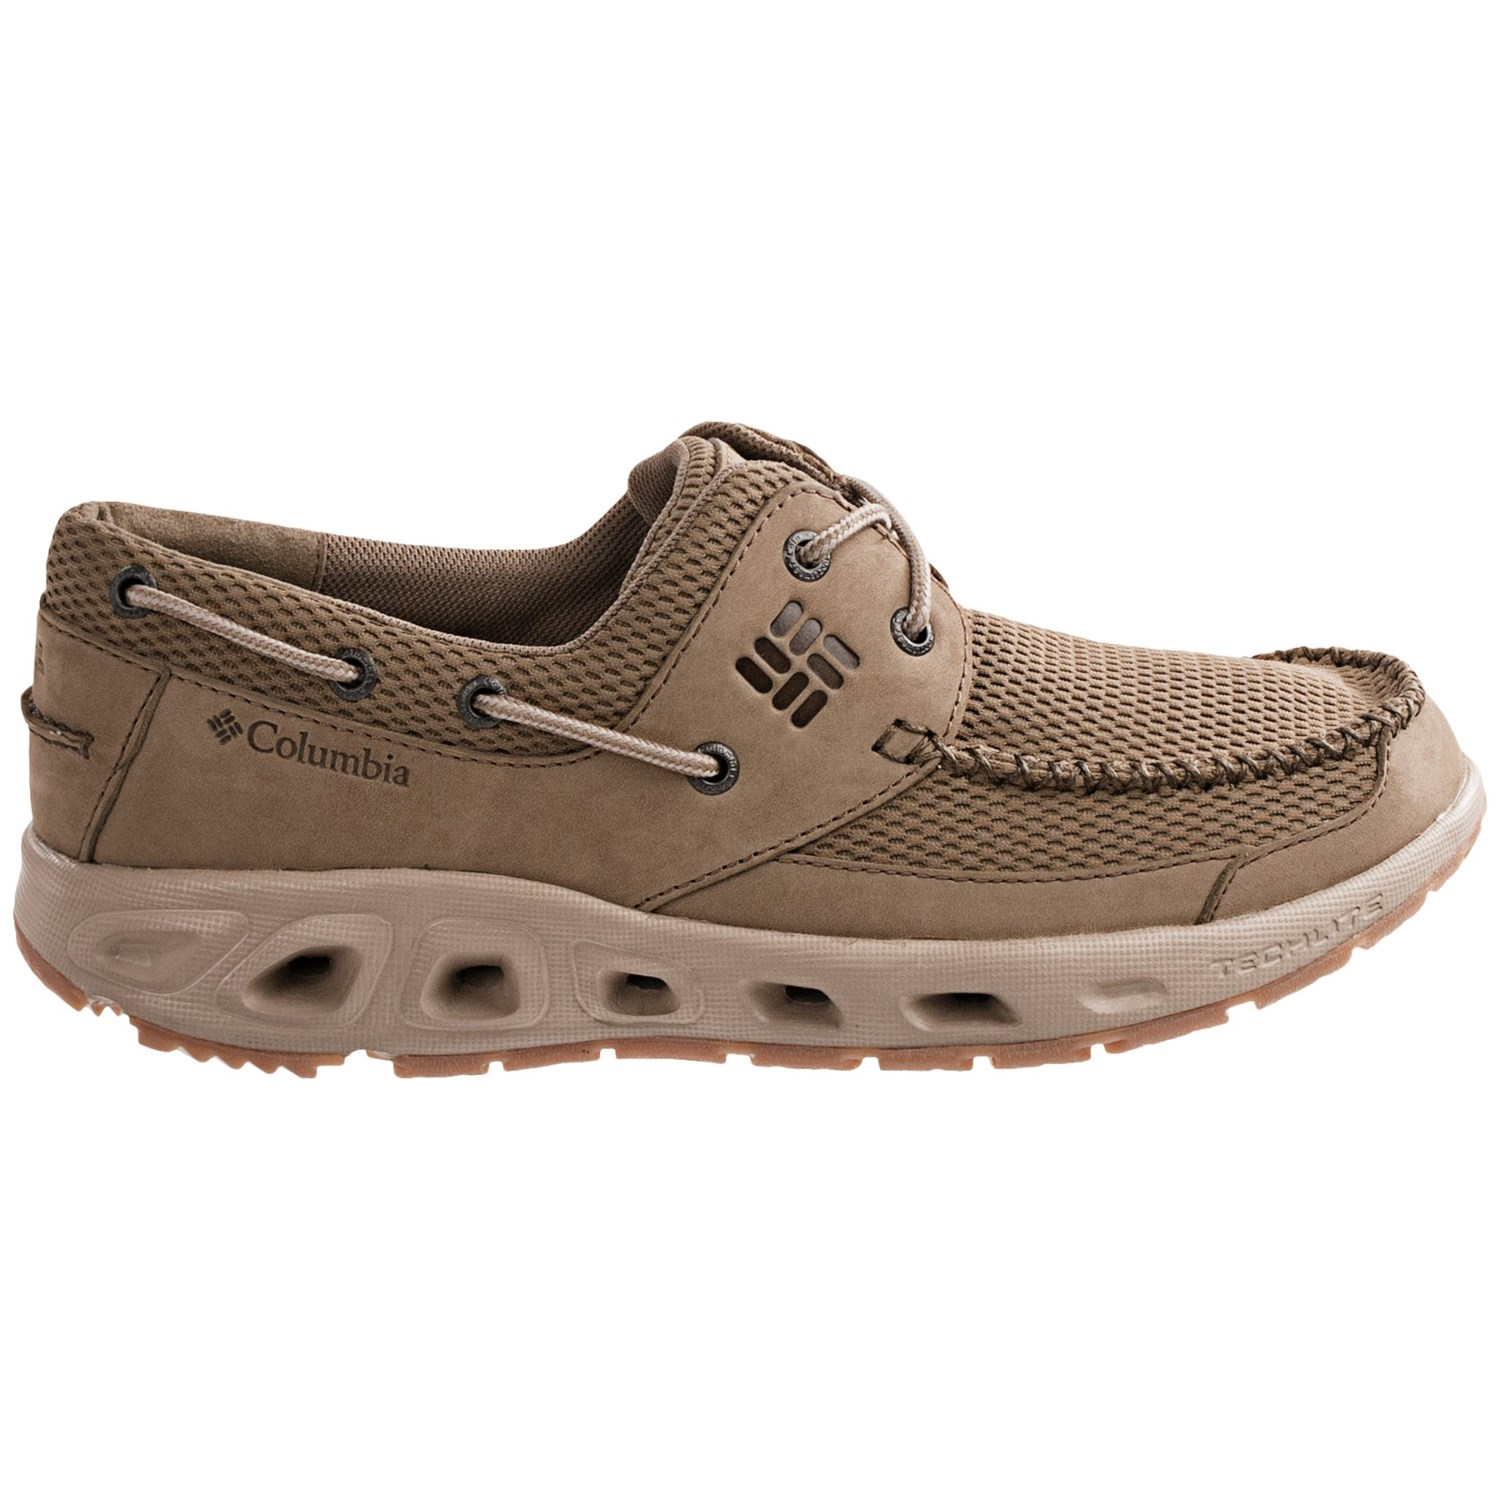 Columbia sportswear boatdrainer pfg boat shoes for men 6939r for Columbia fishing shoes